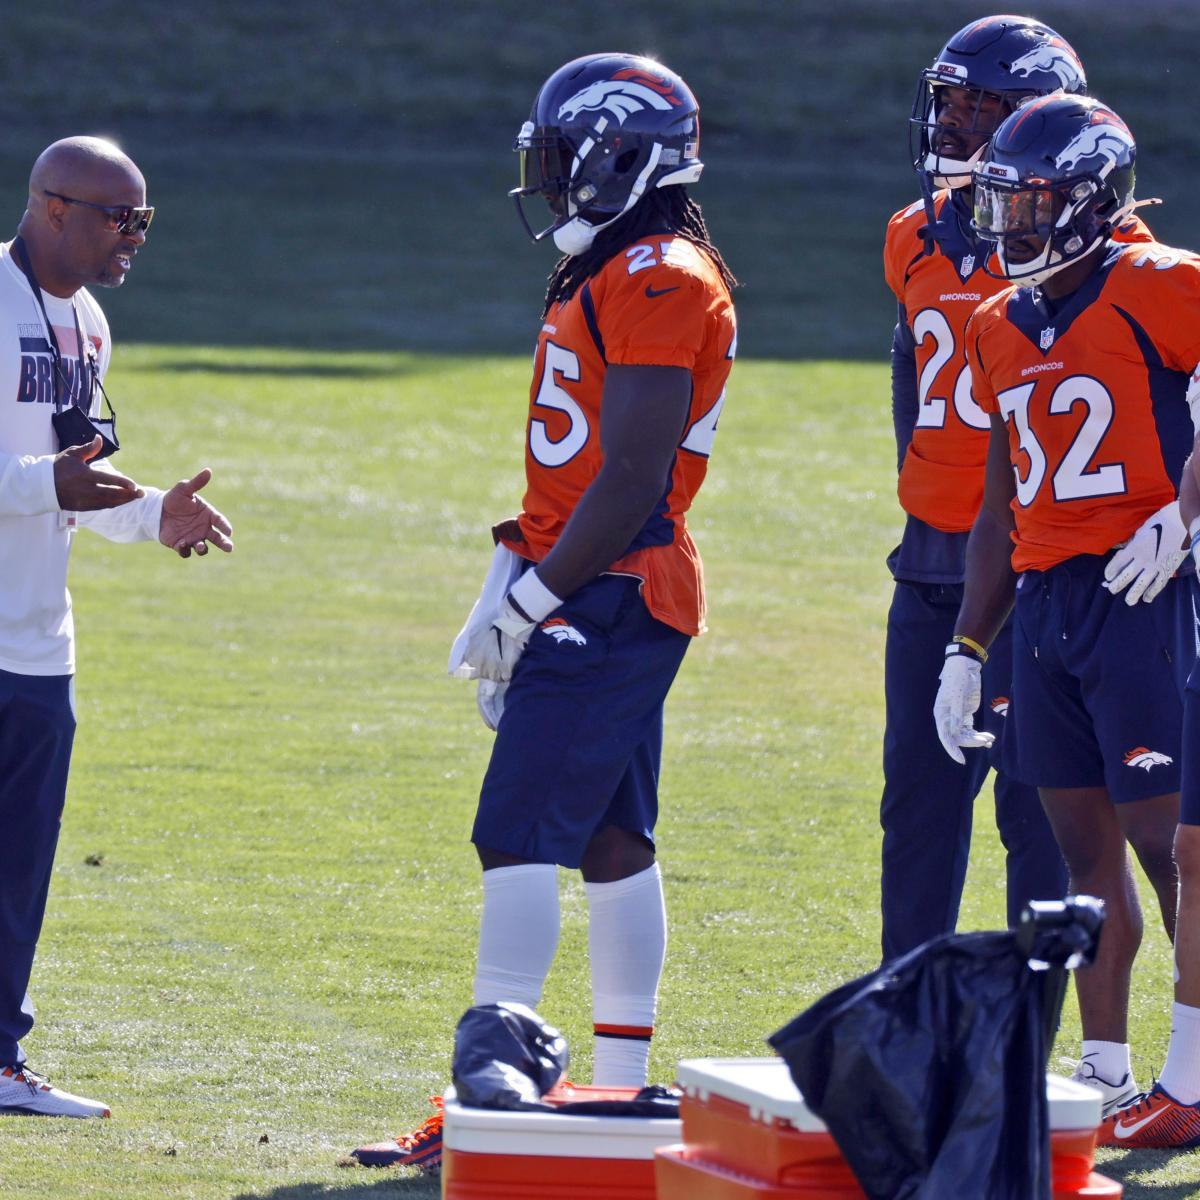 Broncos RB Coach Curtis Modkins Self-Isolating After Positive COVID-19 Test